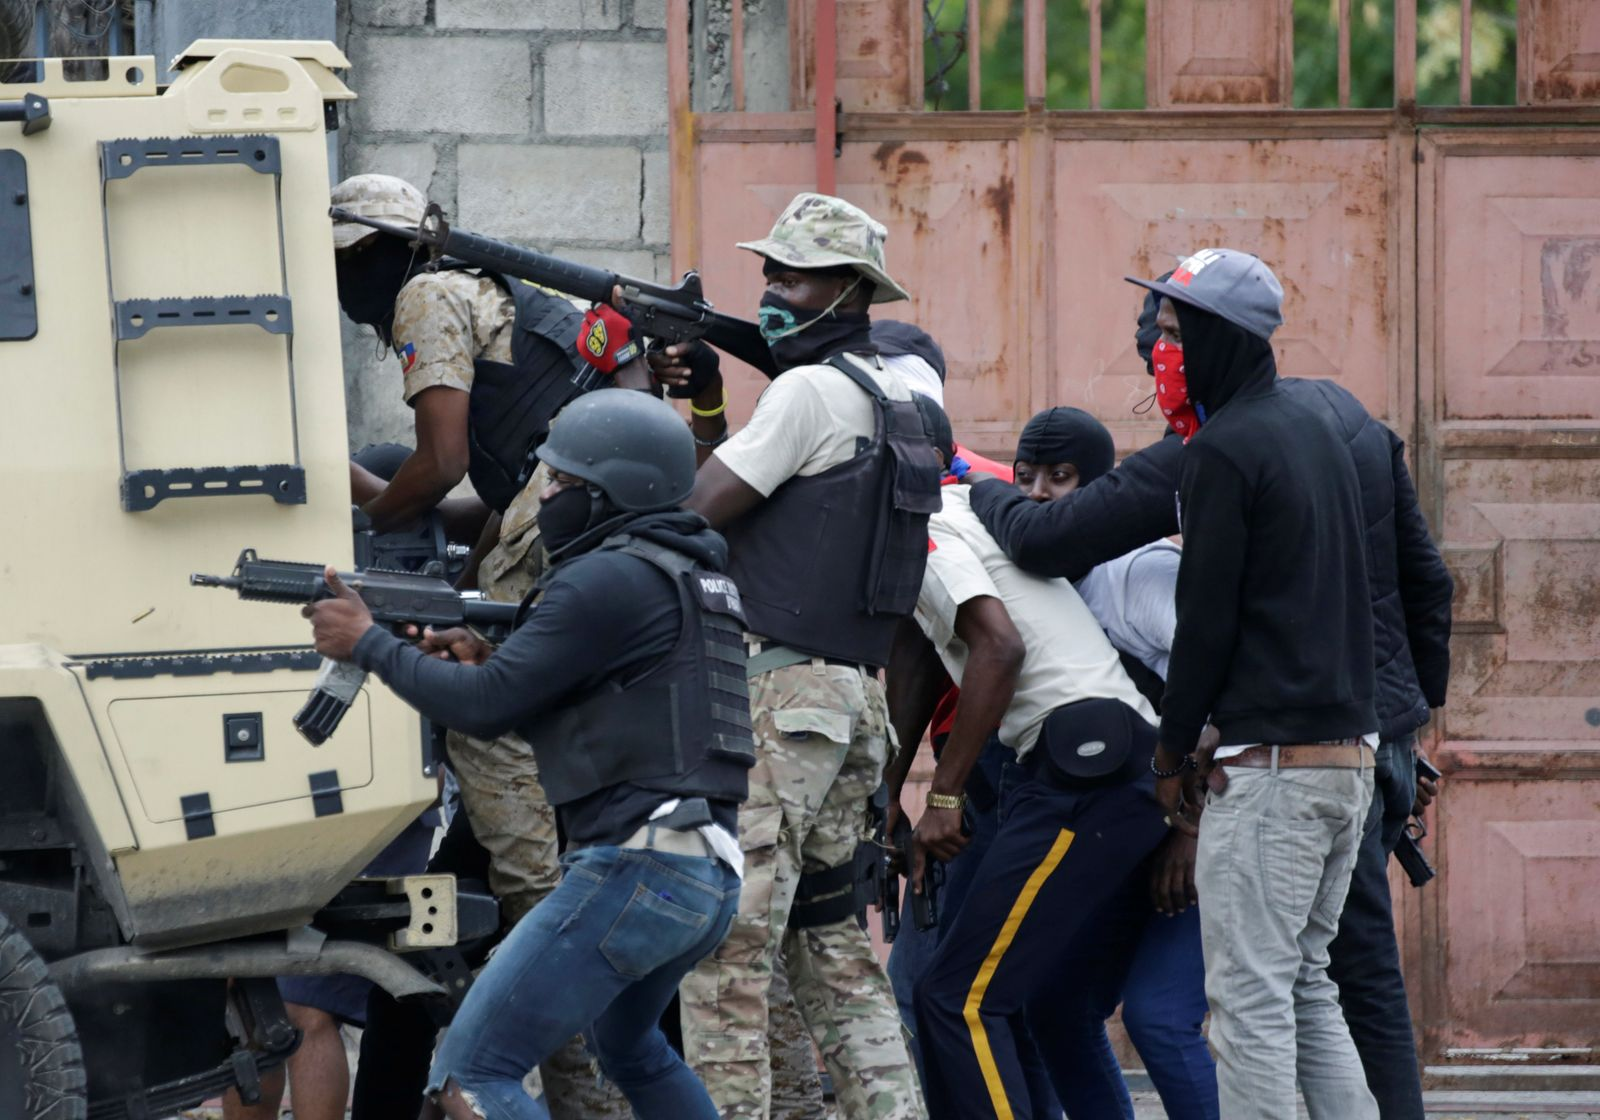 Protesters and police members take cover behind a police armoured vehicle during a shooting in Champ de Mars, Port-au-Prince